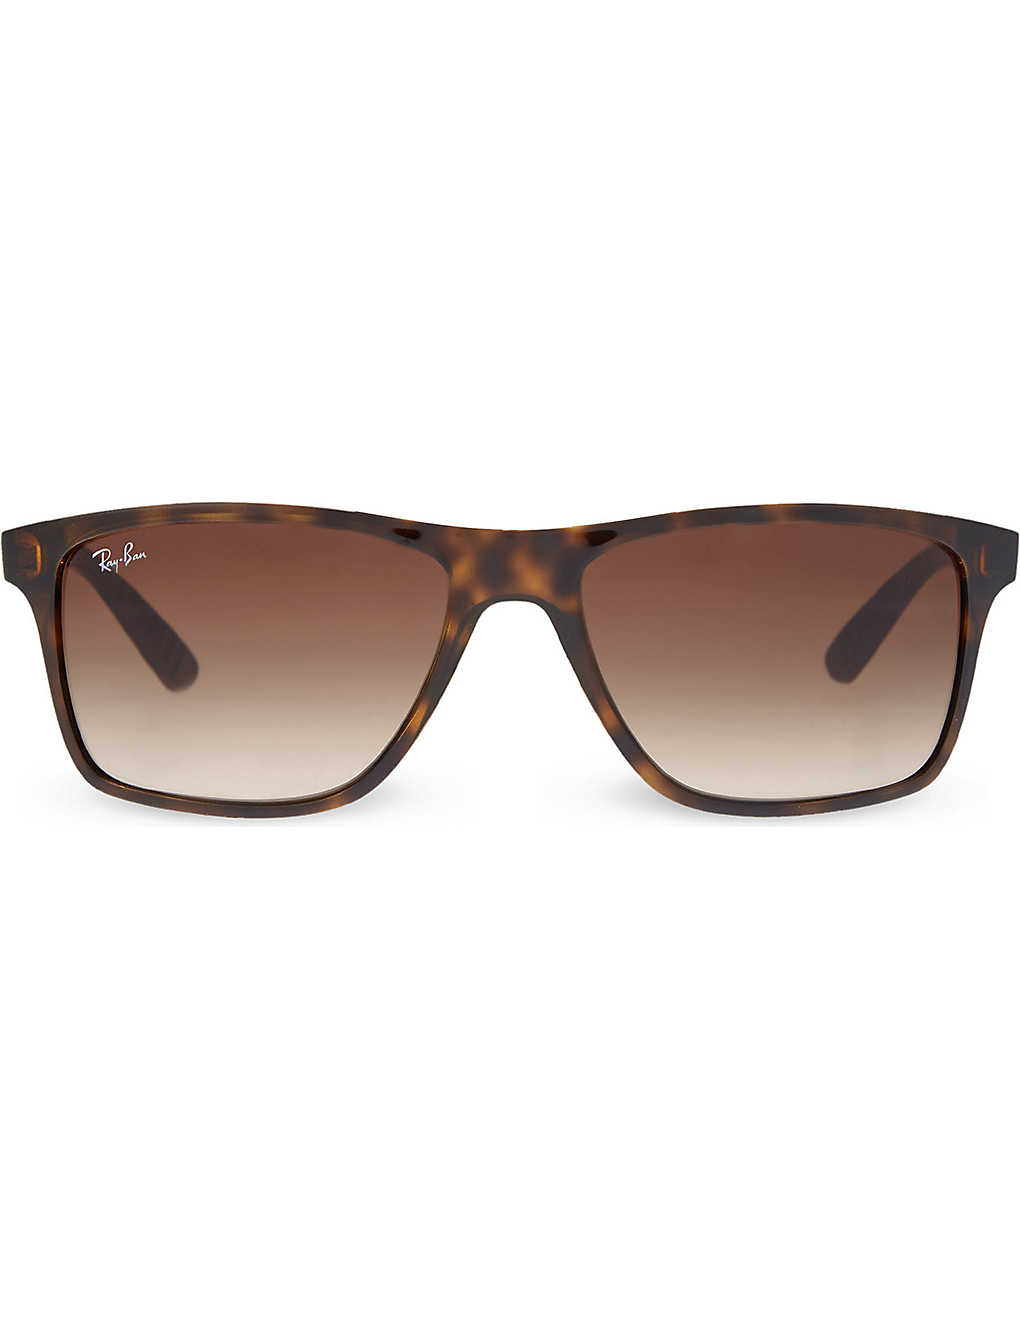 9703f3c85c5 RAY-BAN - RB4234 tortoise shell rectangular sunglasses